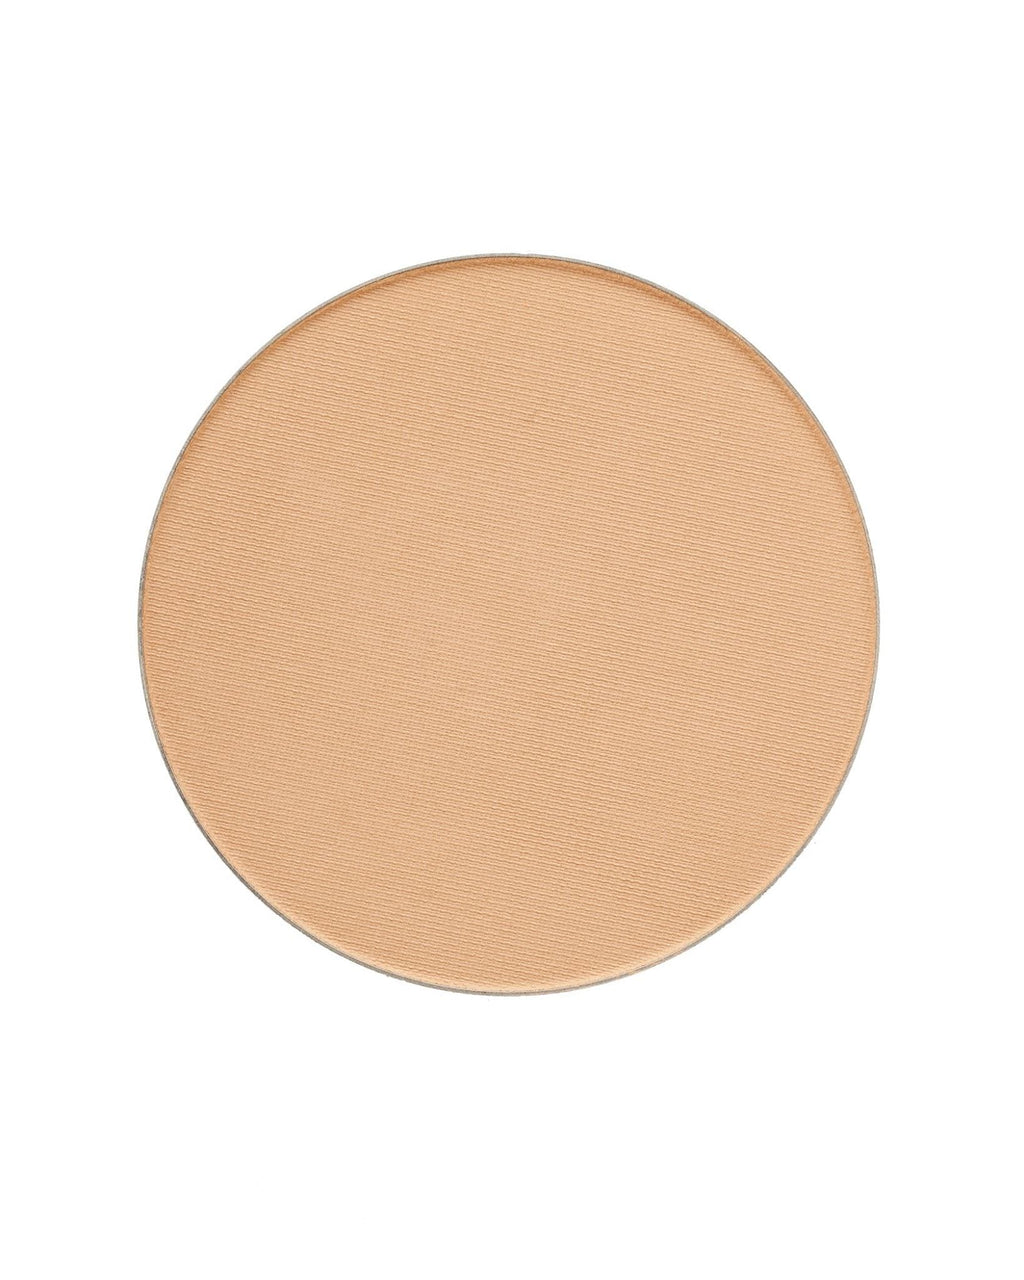 Mineral Powder Foundation Pan in Sand